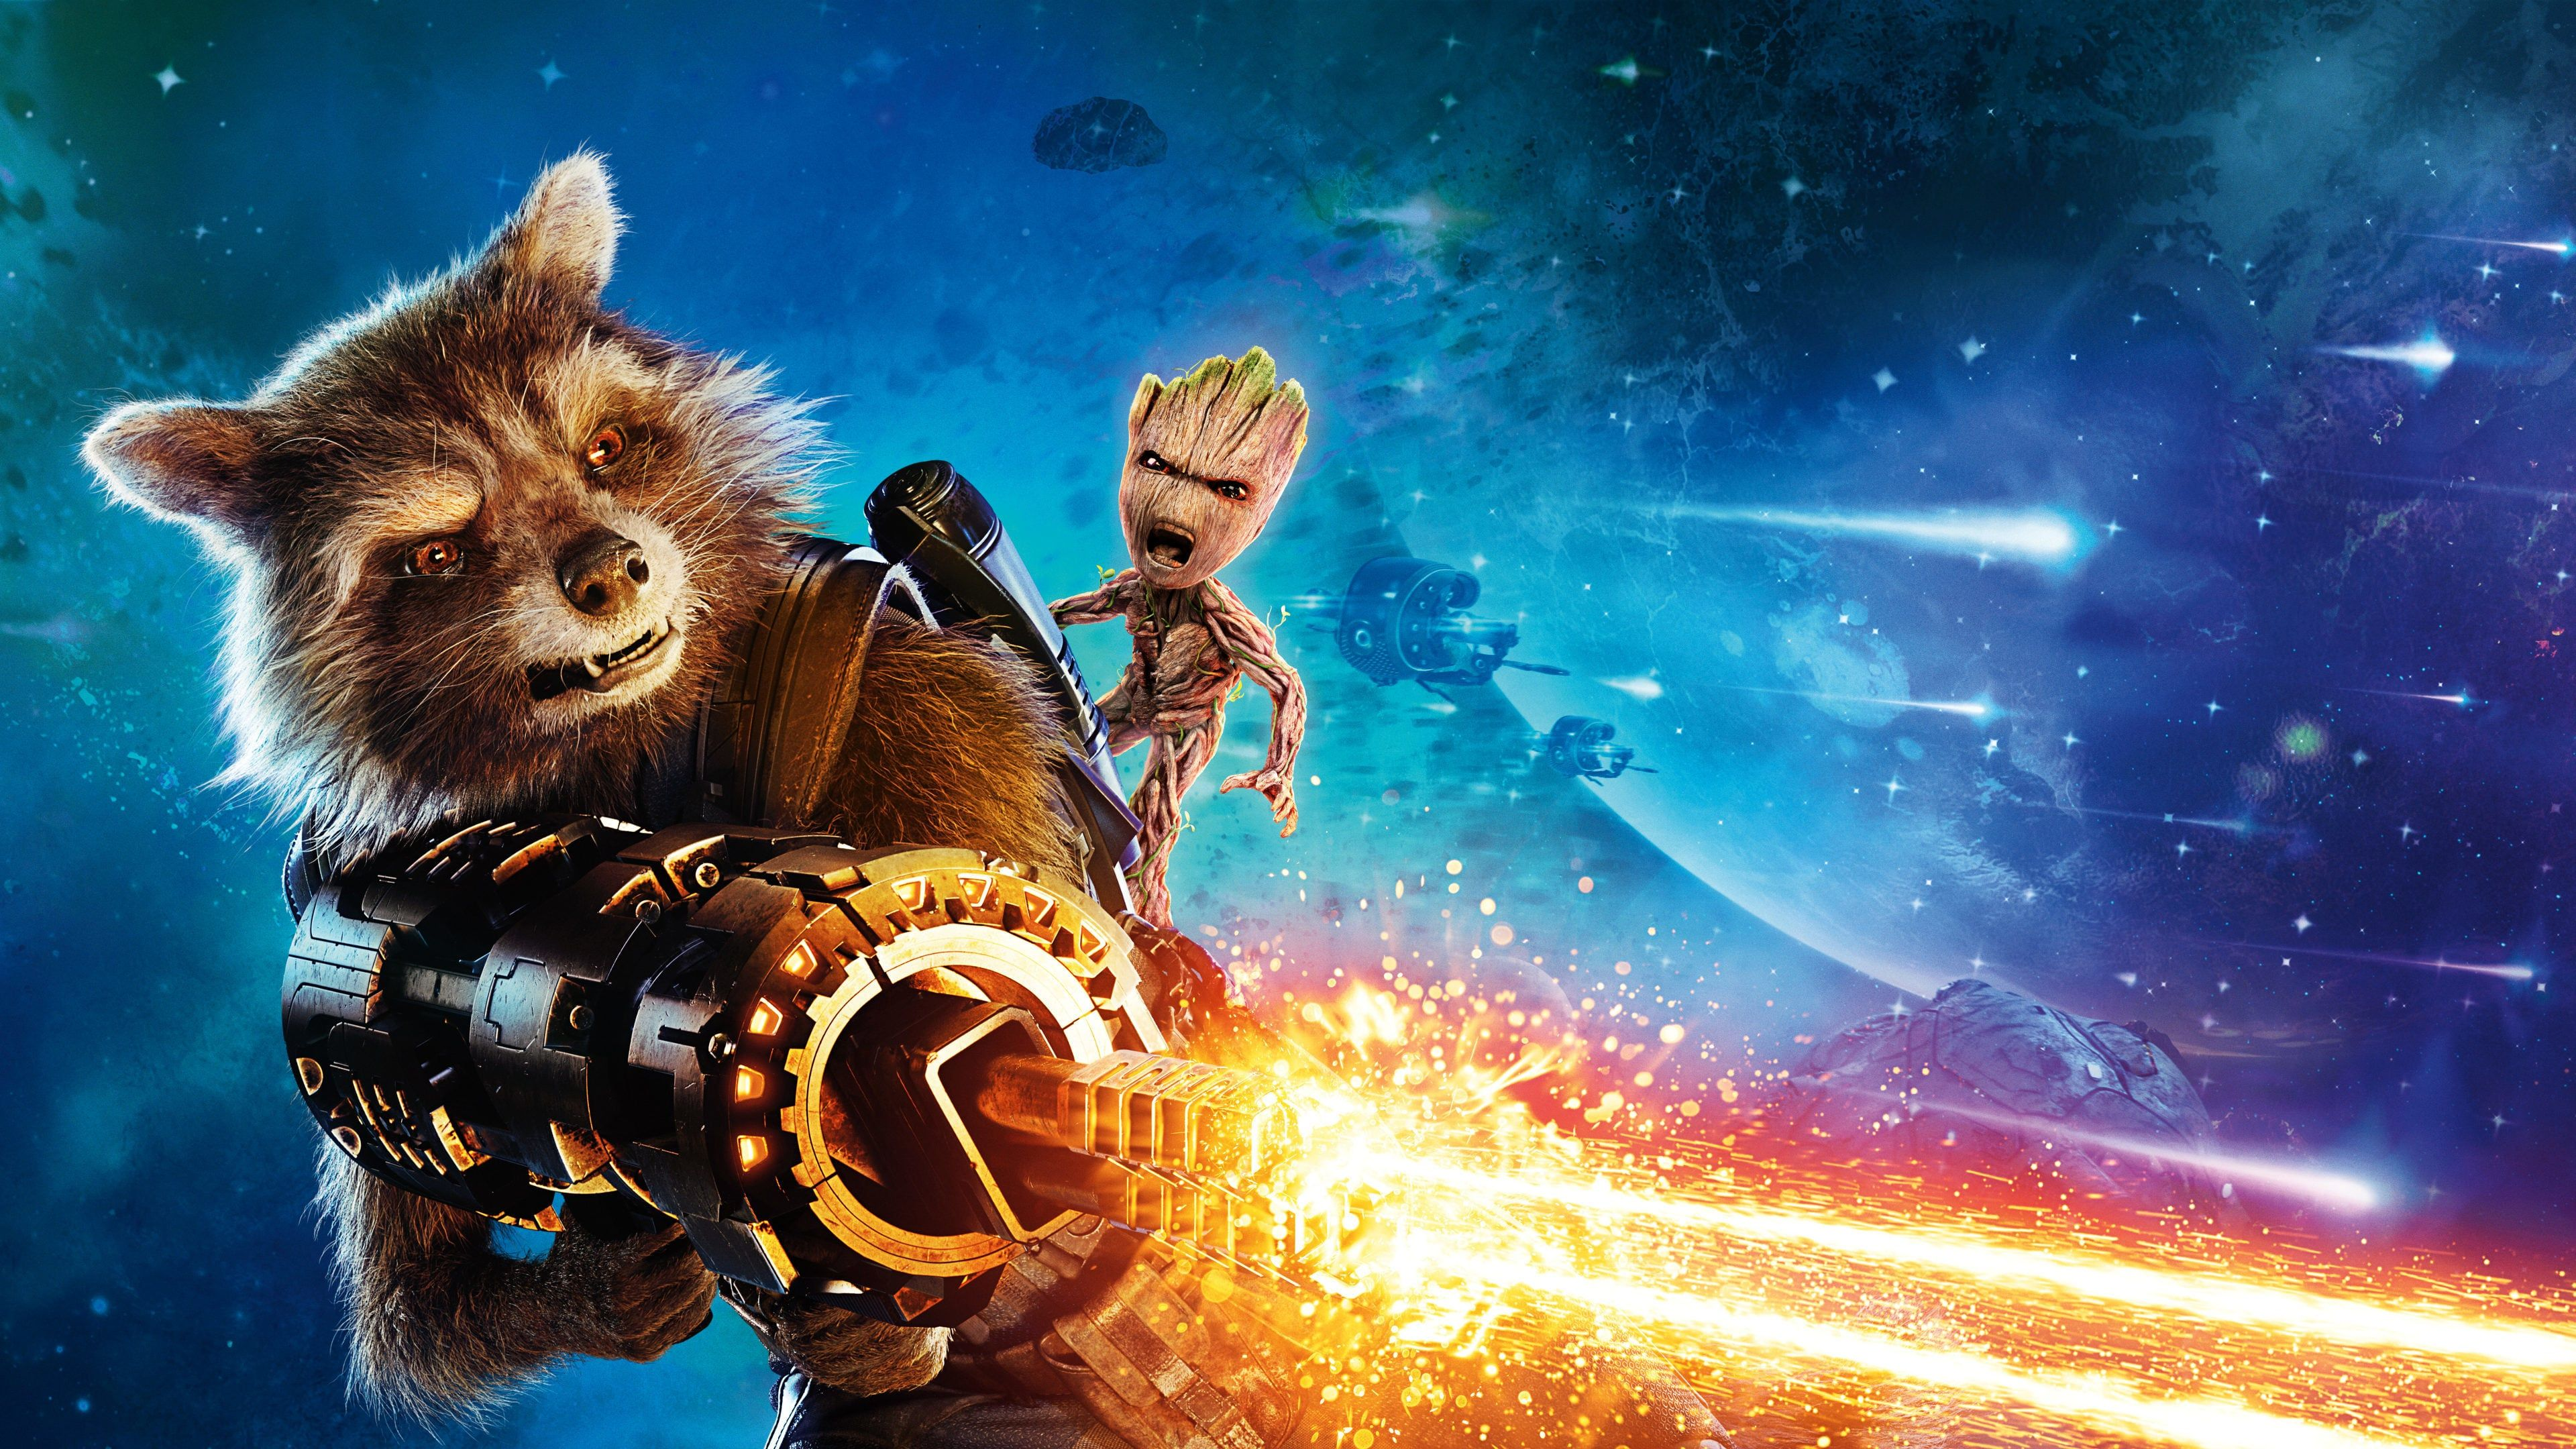 Guardians Of The Galaxy Vol 2 2017 Ganzer Film Deutsch Komplett Kino Gerade Erst Sind In Guardians Of Guardians Of The Galaxy Vol 2 Rocket Raccoon Baby Groot